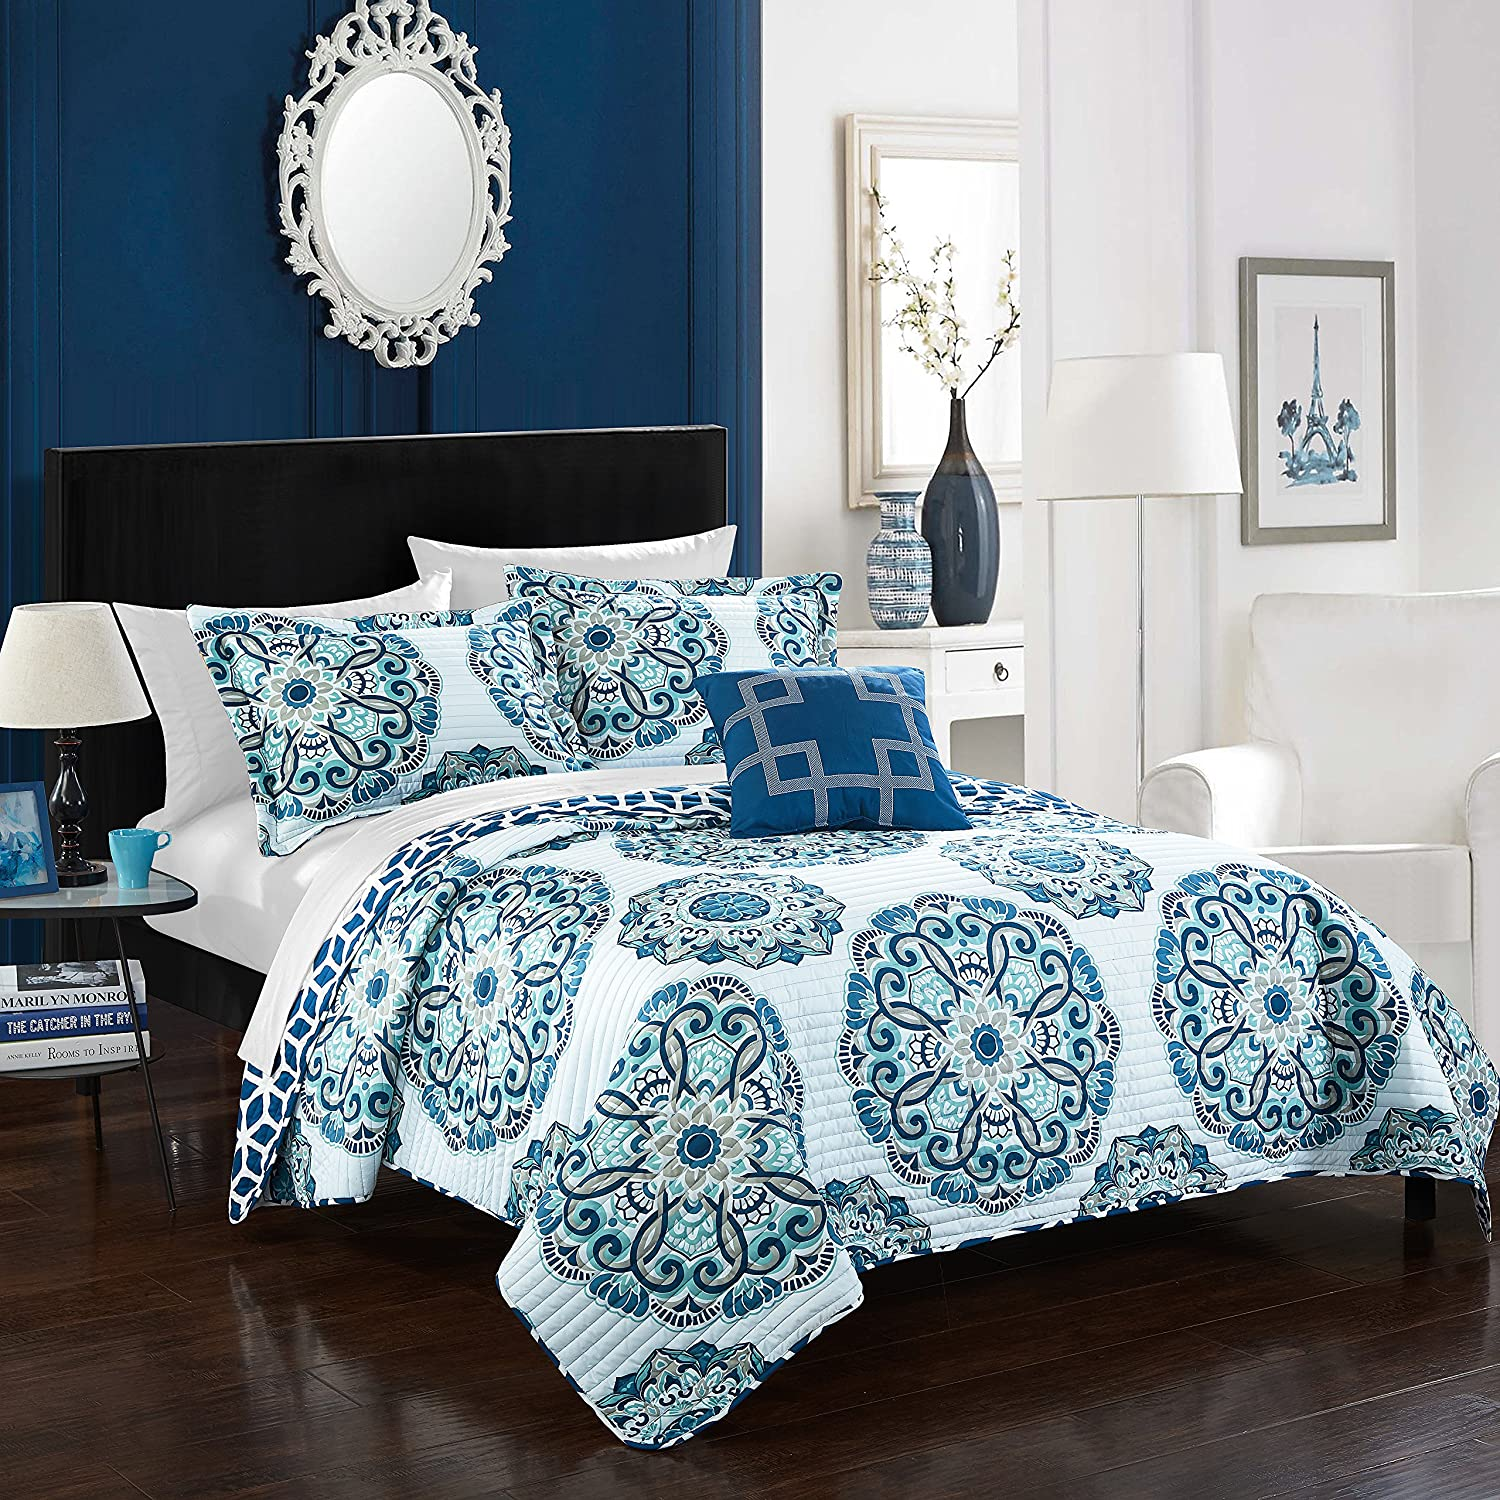 Chic Home Madrid 3 Piece Reversible Quilt Set, Twin, Blue